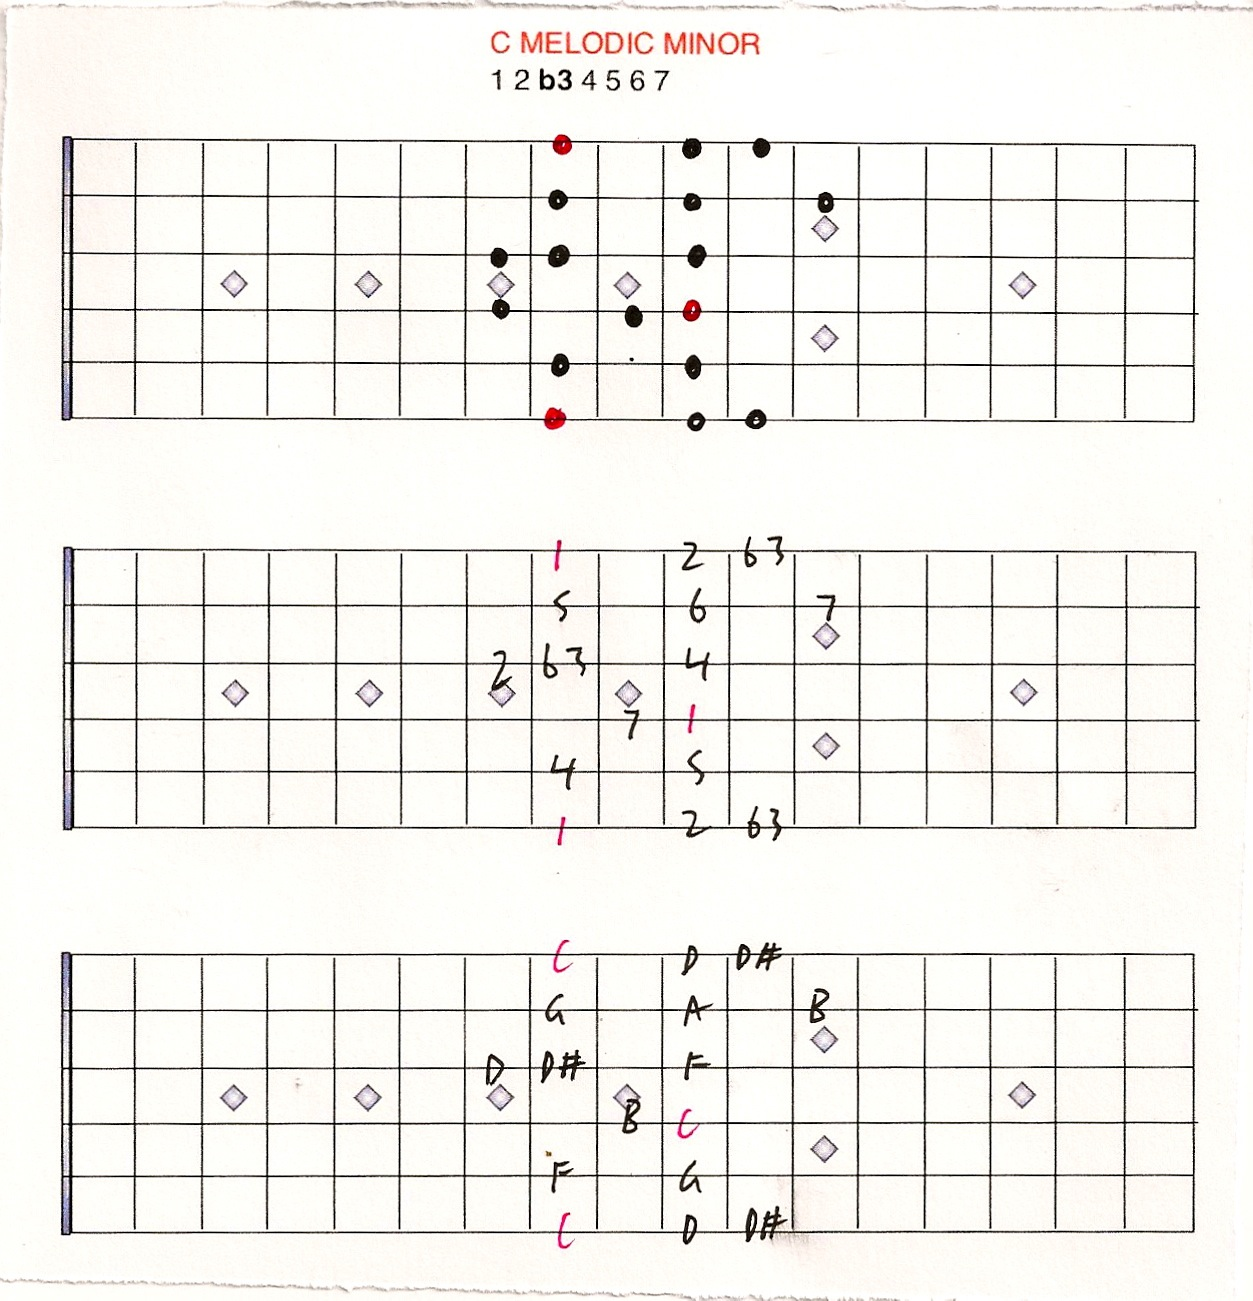 Melodic Minor Scales Chart Melodic Minor Scale Chart